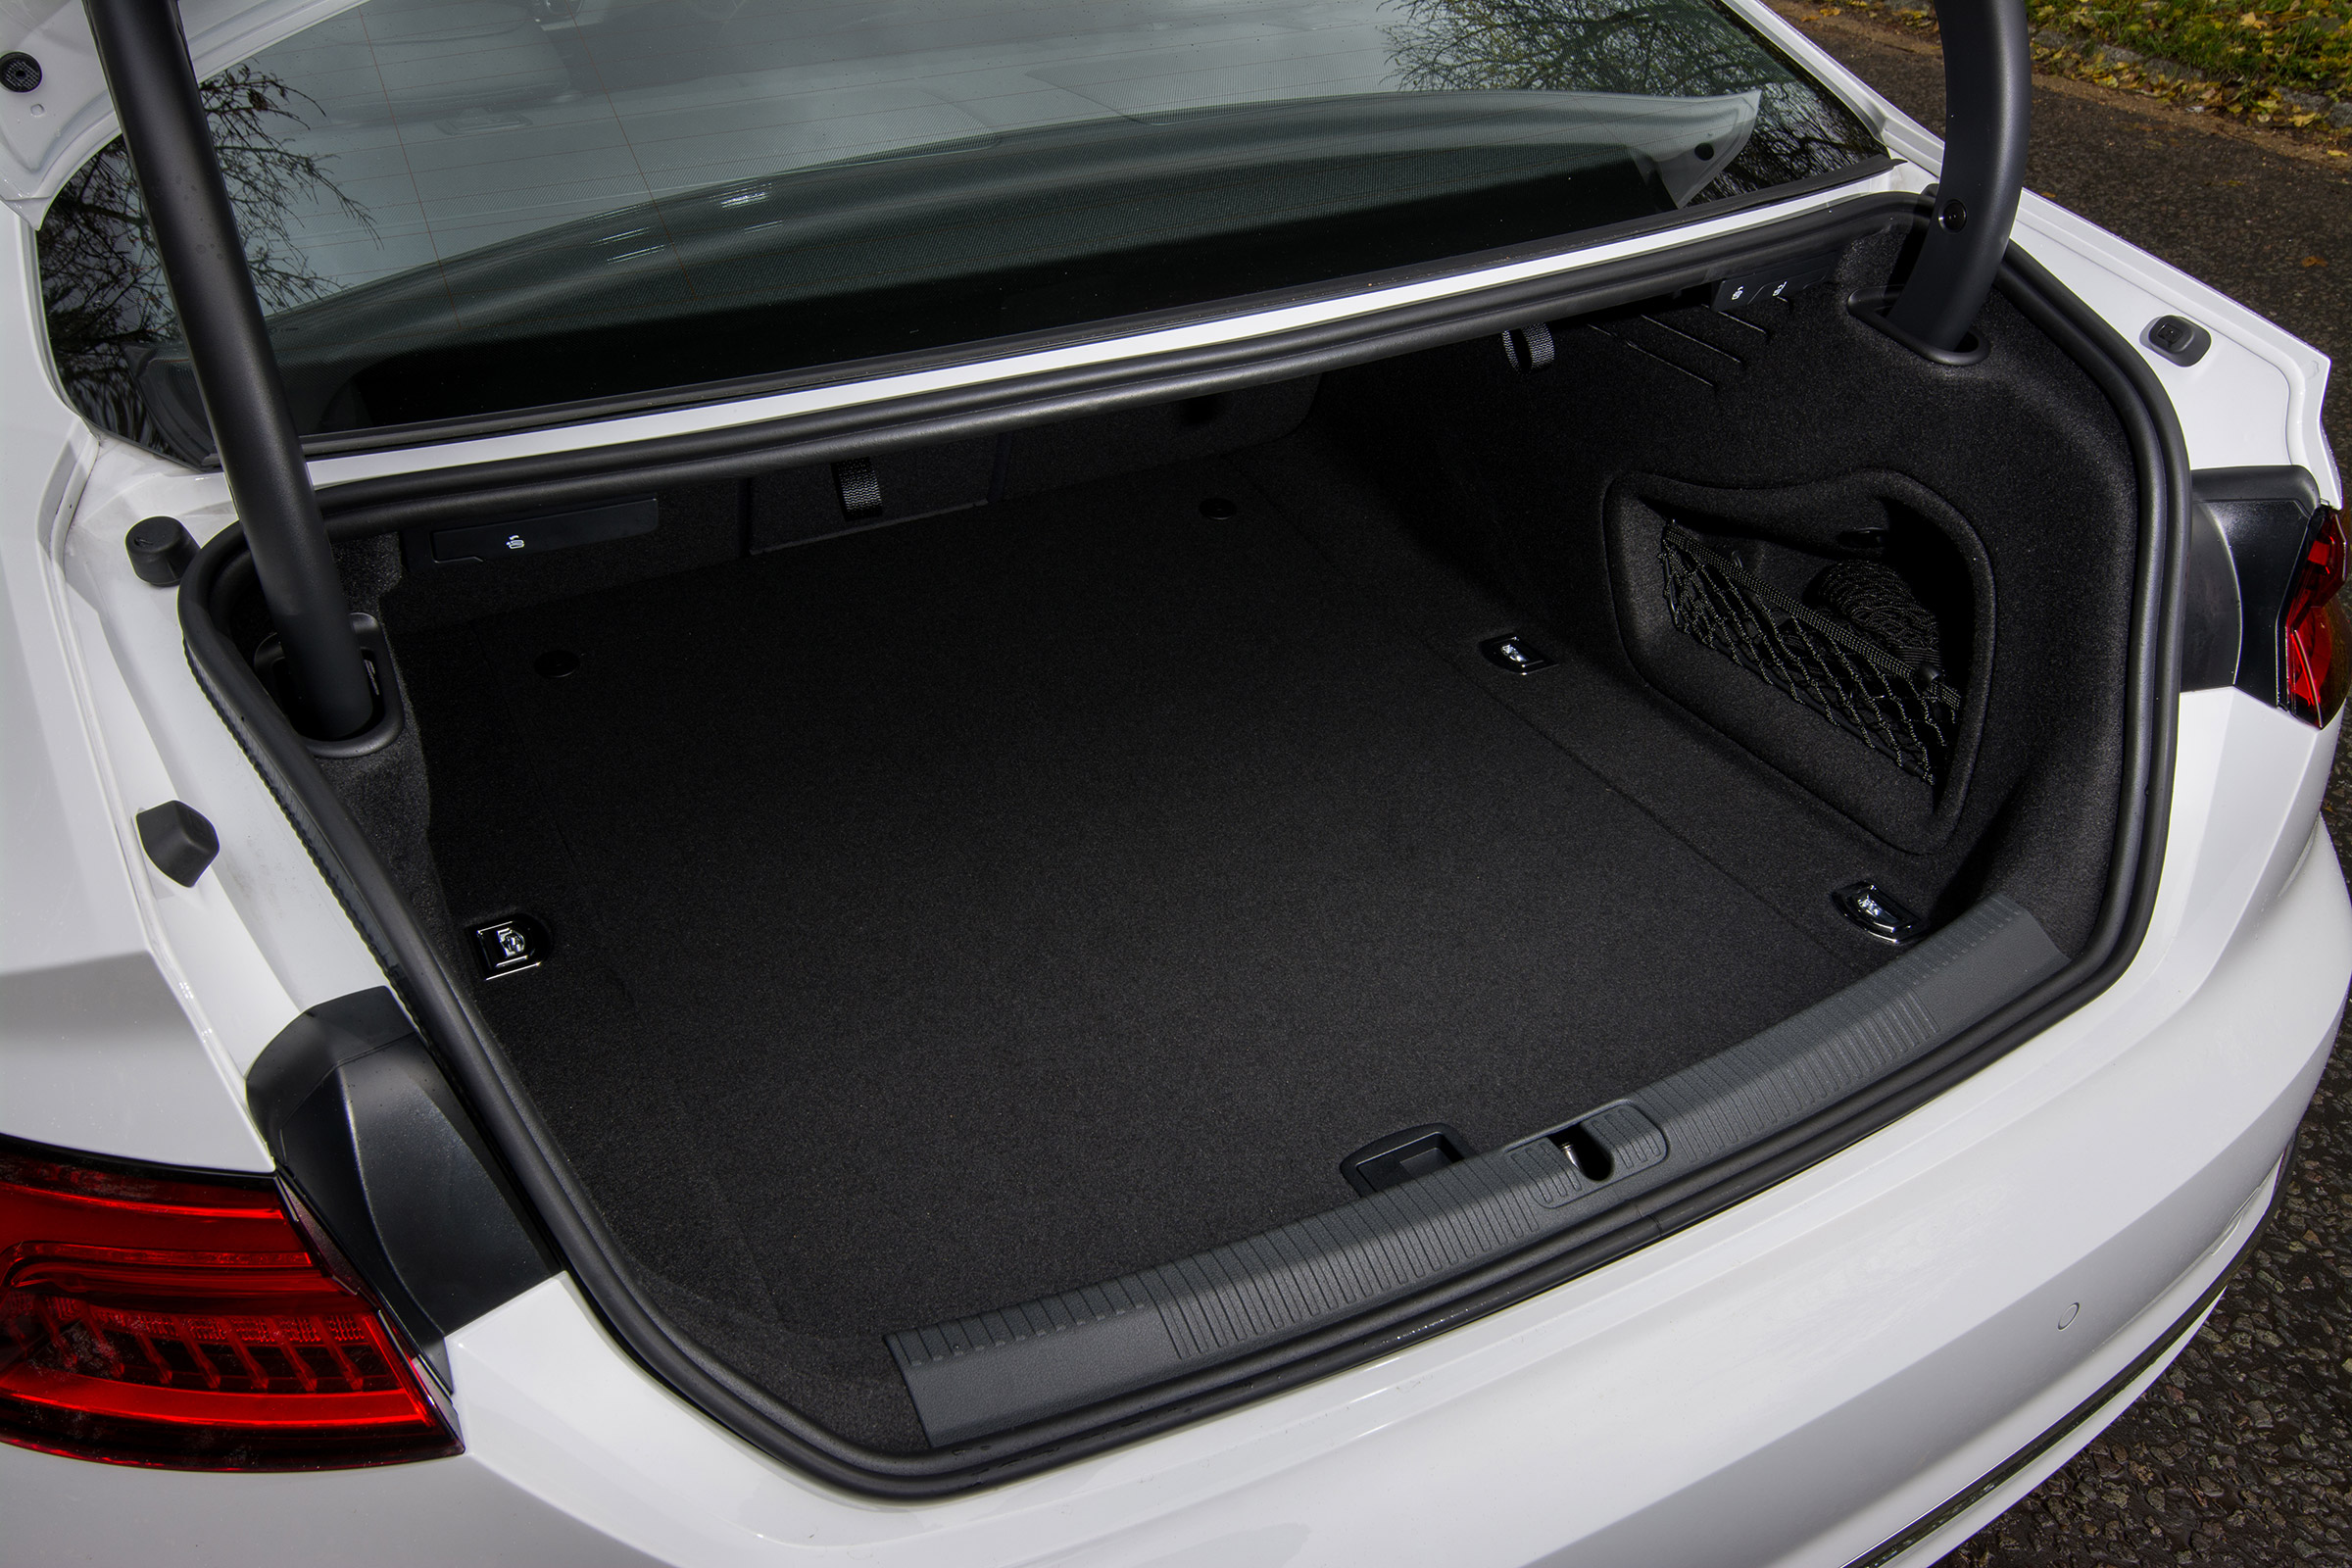 2017 Audi A5 Coupe Interior View Cargo Trunk (View 10 of 21)